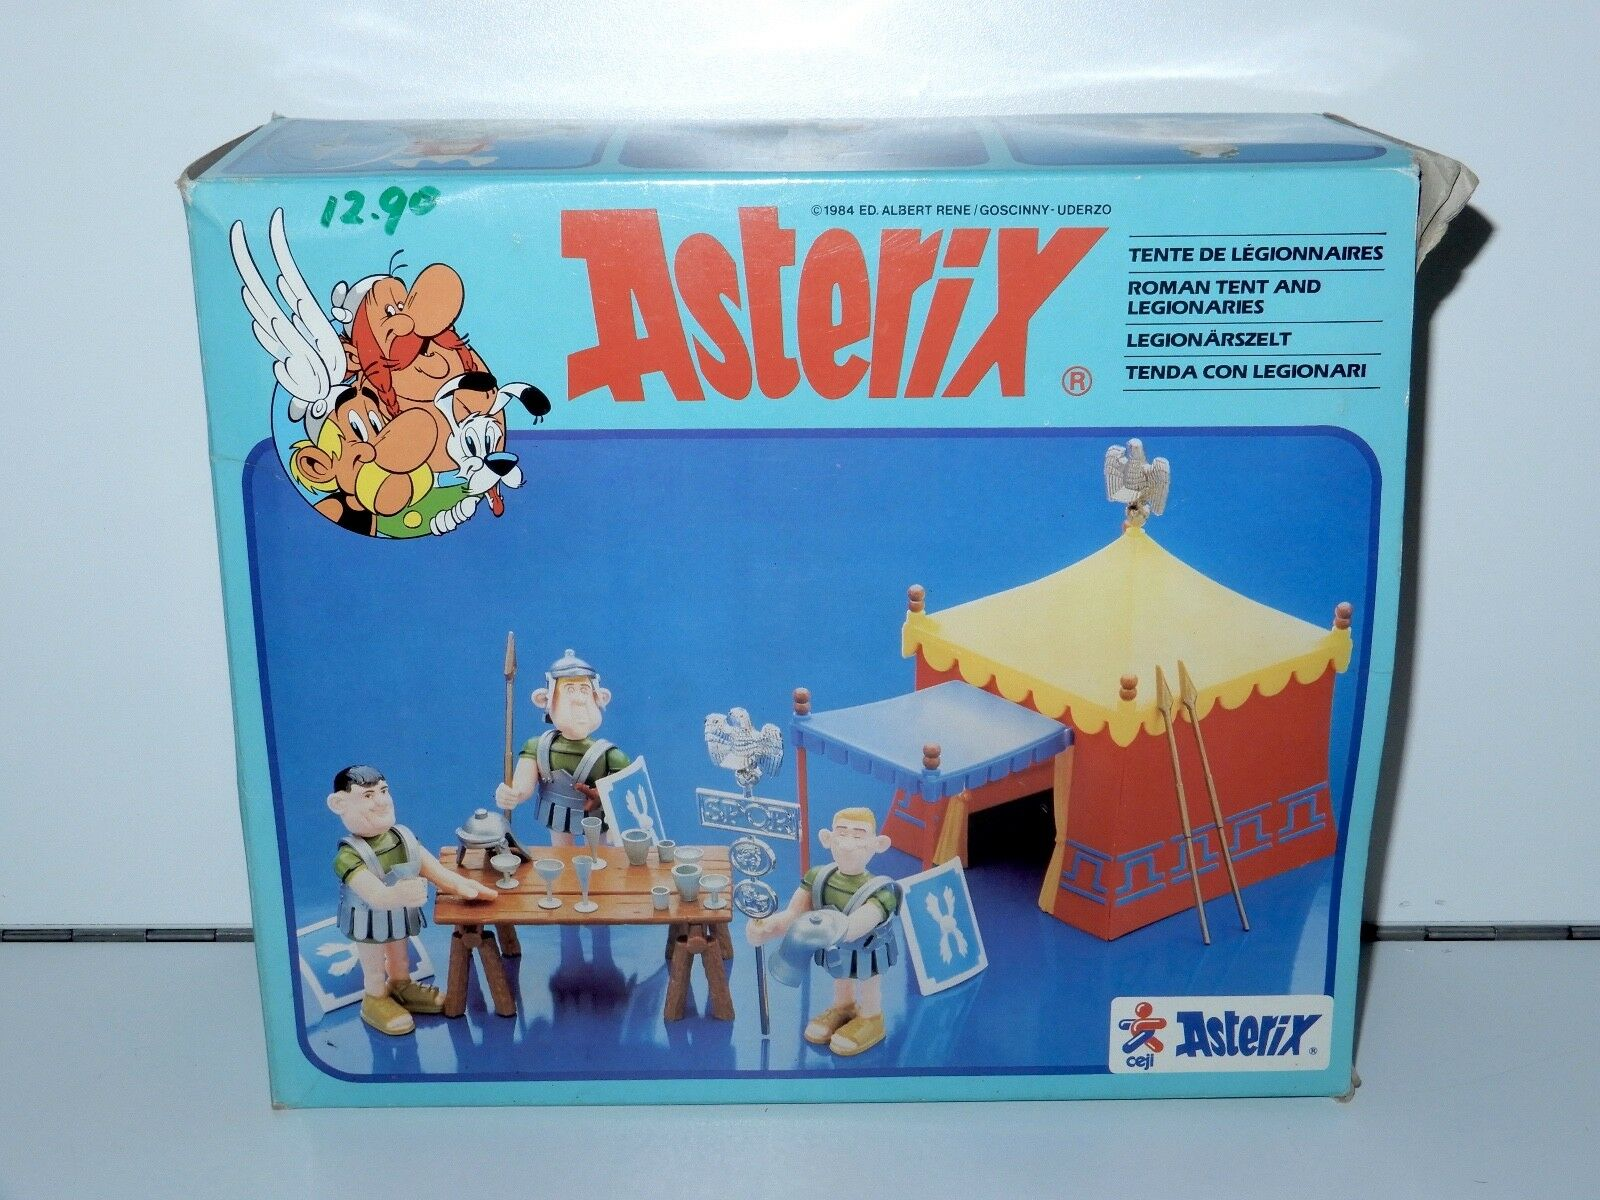 ASTERIX PLAY ACTION FIGURES 6235 LEGIONAIRES TENT EMPTY BOX ONLY 1980s CEJI HTF